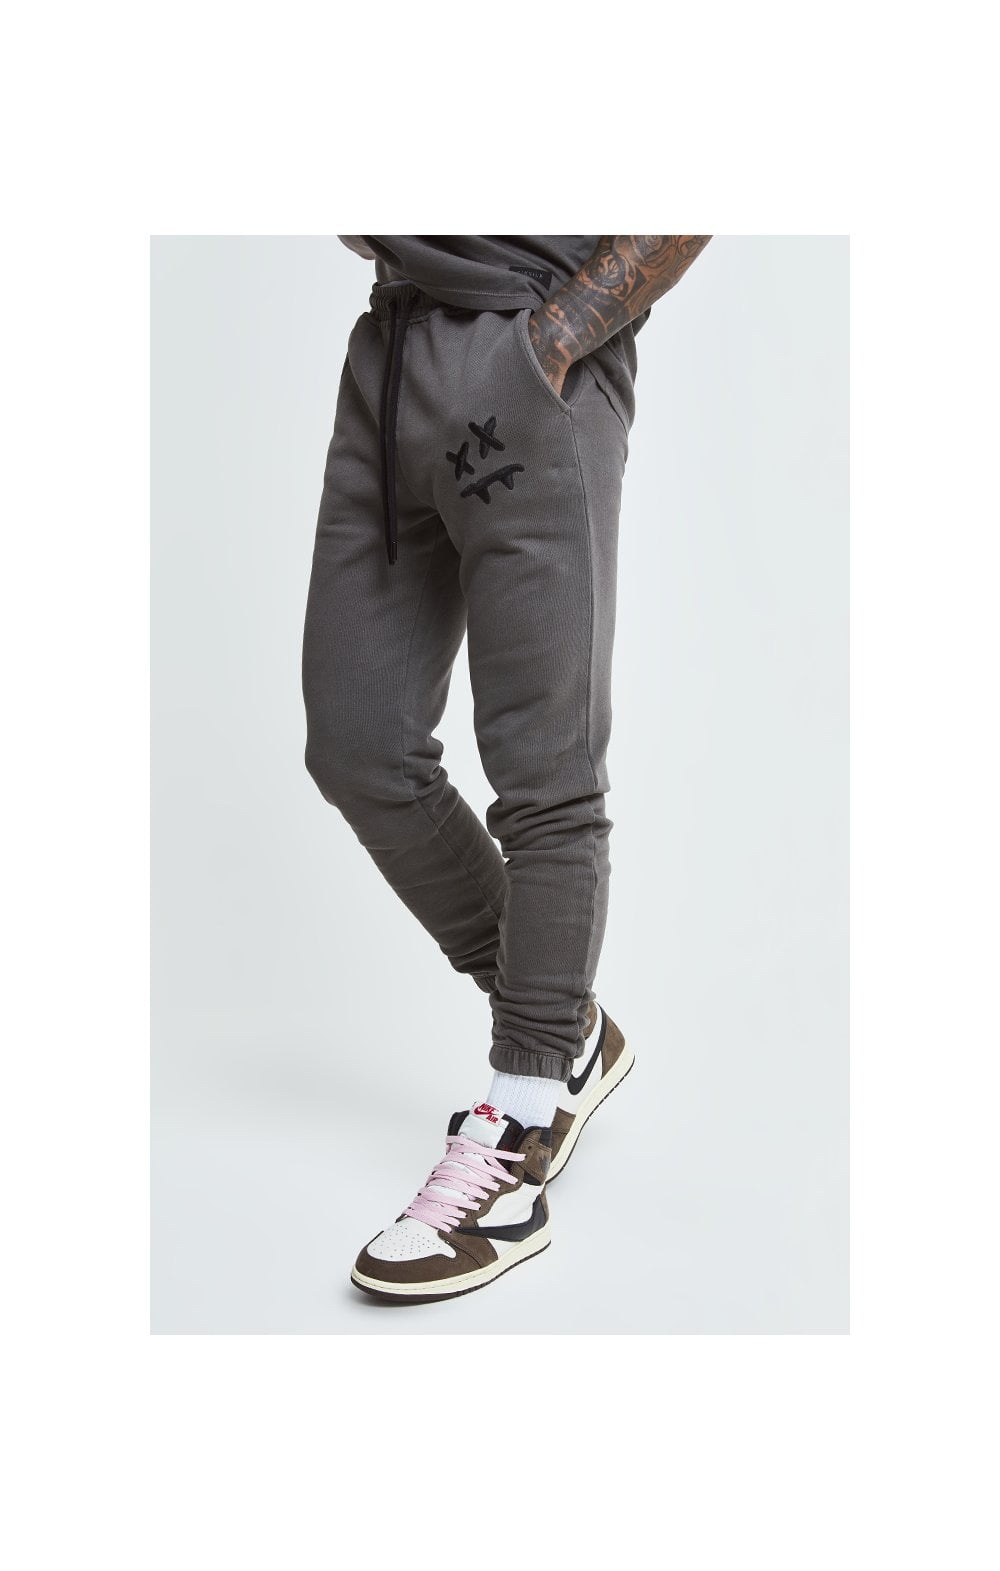 Load image into Gallery viewer, SikSilk X Steve Aoki Joggers - Washed Grey